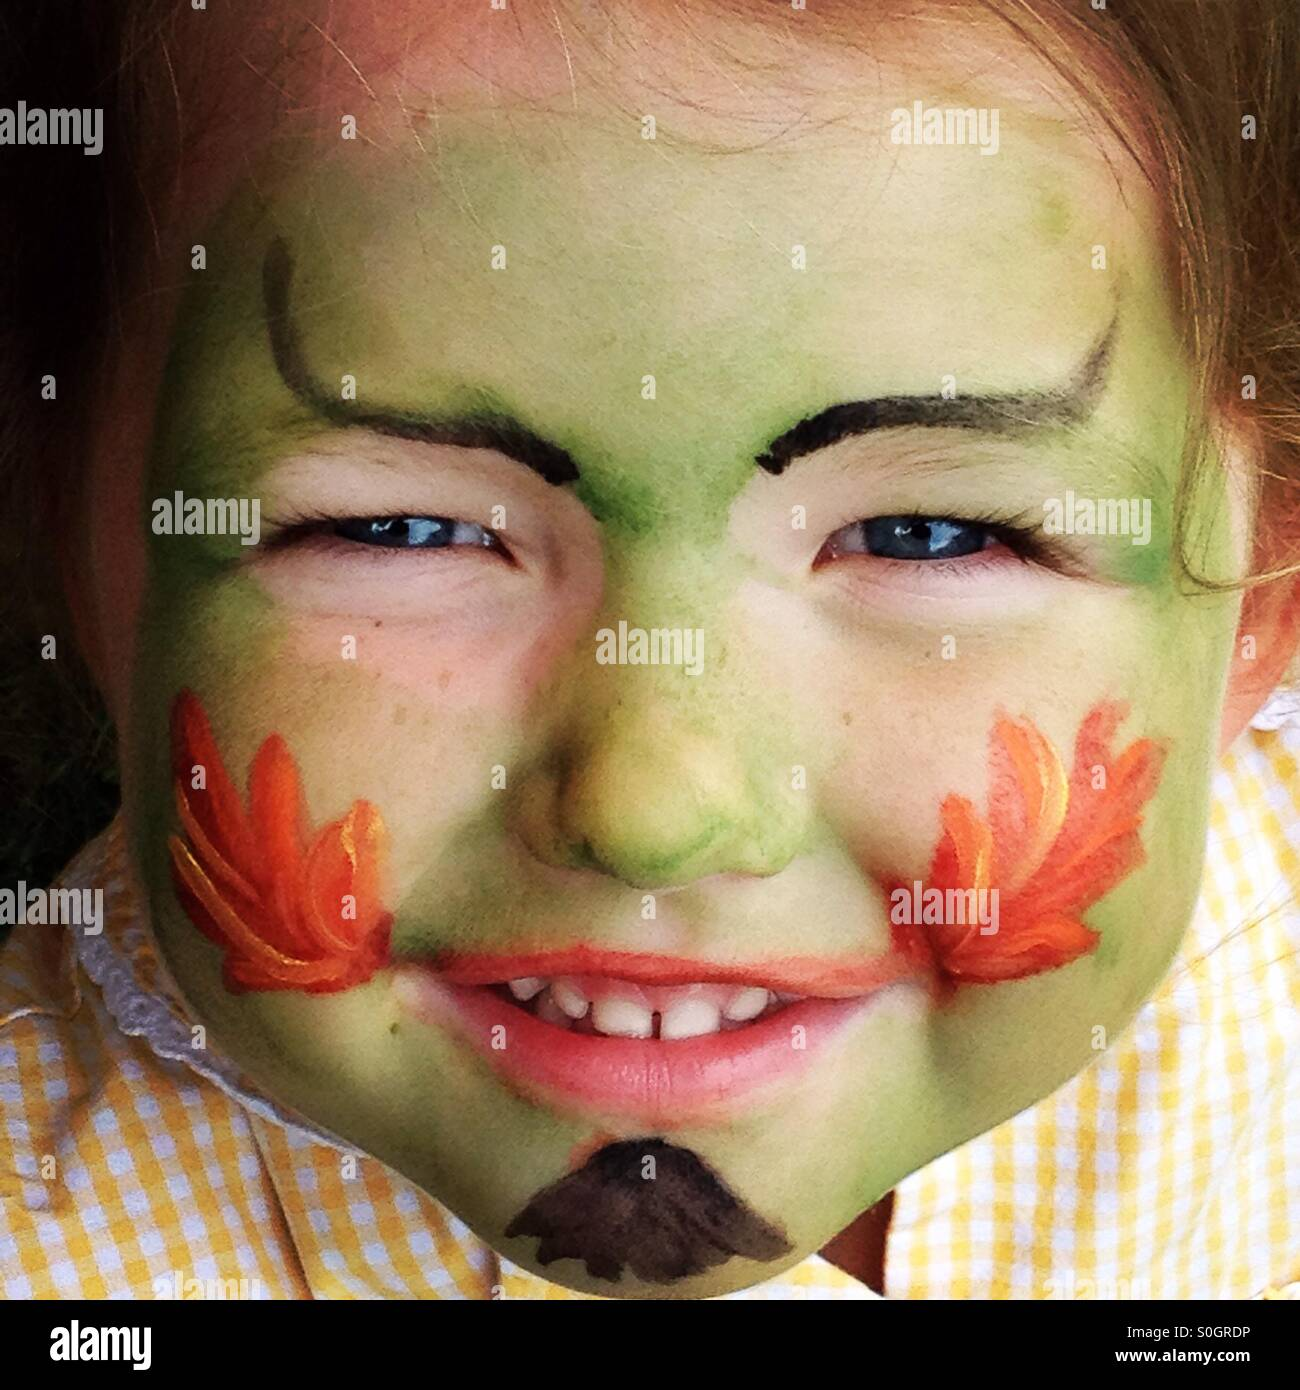 Child with face painted like an Eastern dragon - Stock Image